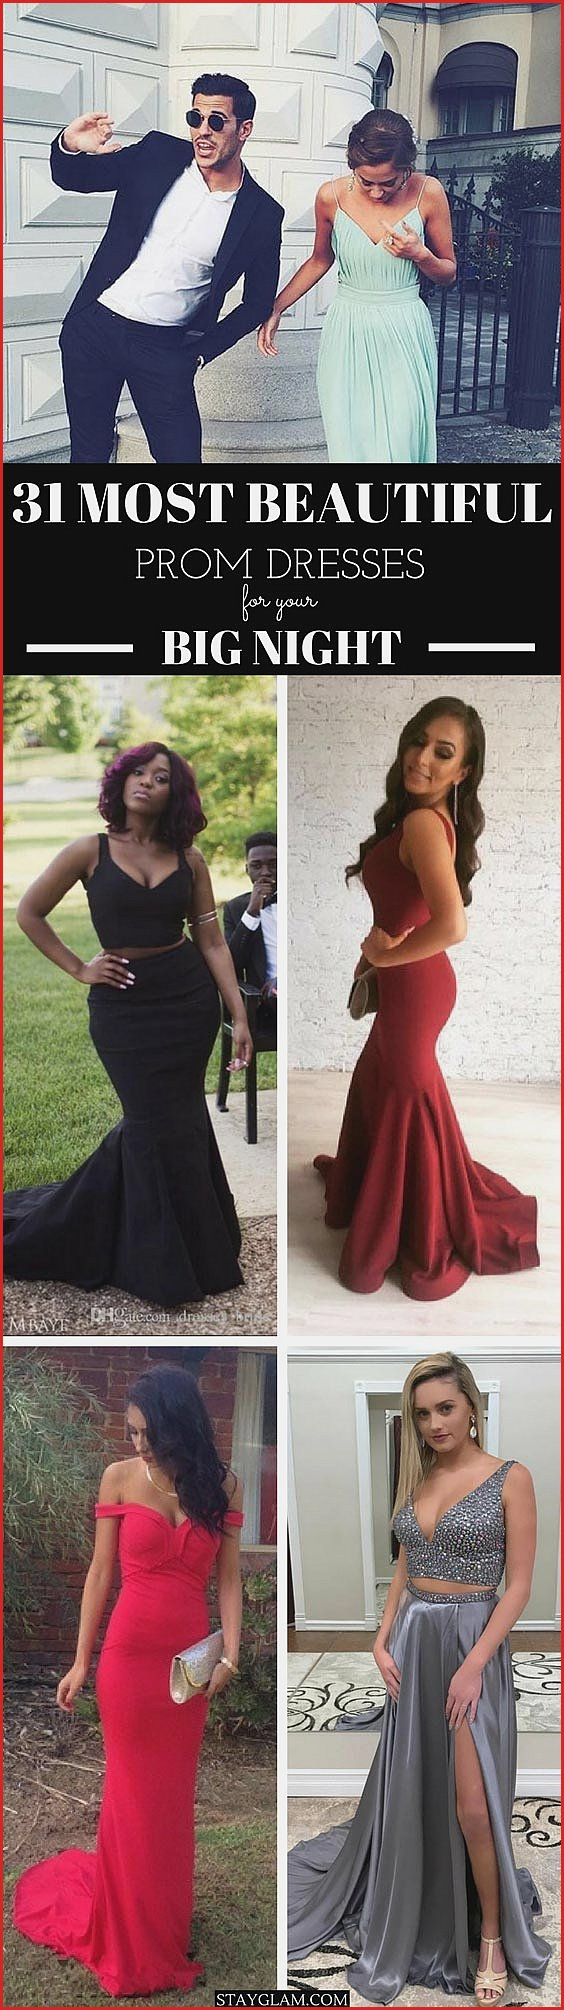 Most Beautiful Prom Dresses for Your Big Night